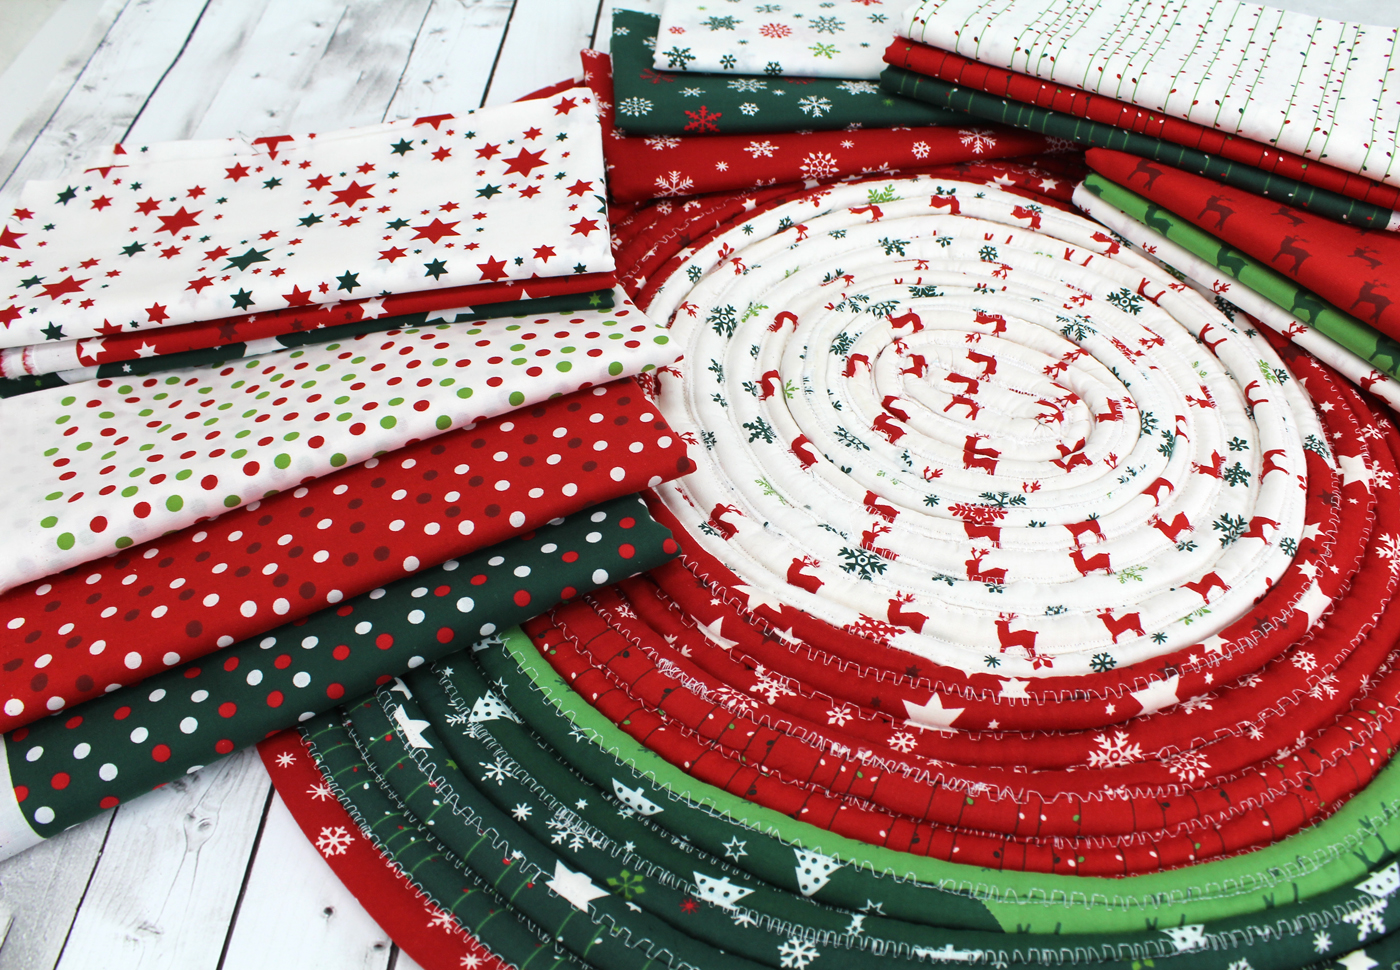 photo of the Christmas basics cotton group featuring dots, stars, snowflakes, light strings, reindeer on top of a jellyroll rug